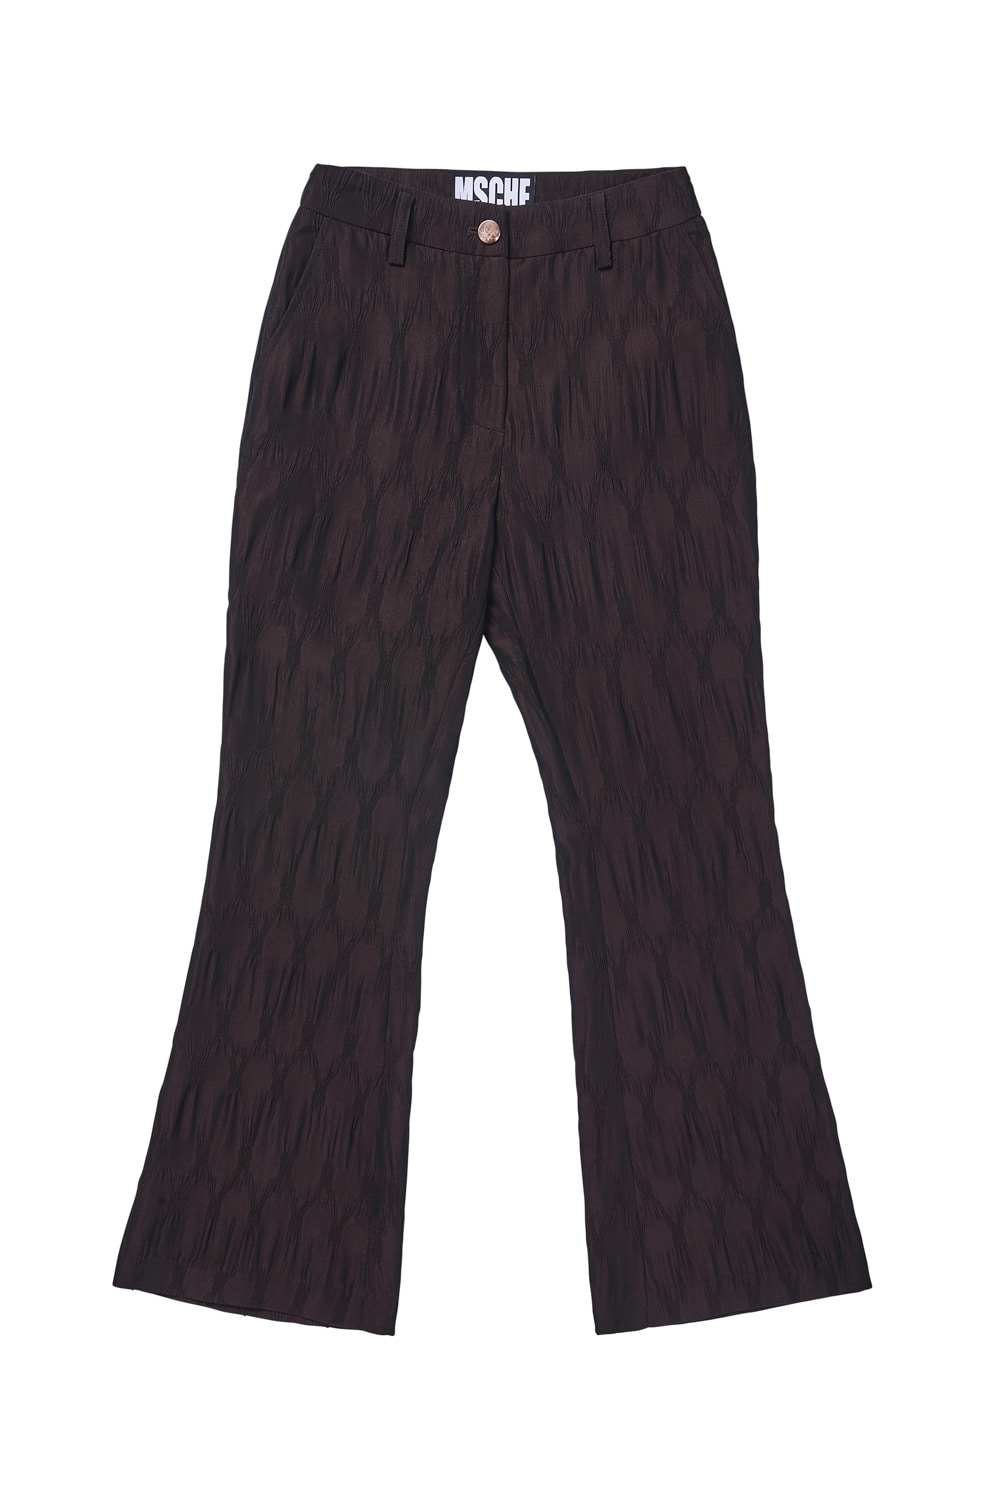 TWO-TONE CRINKLE BOOTCUT PANTS_brown/light brown